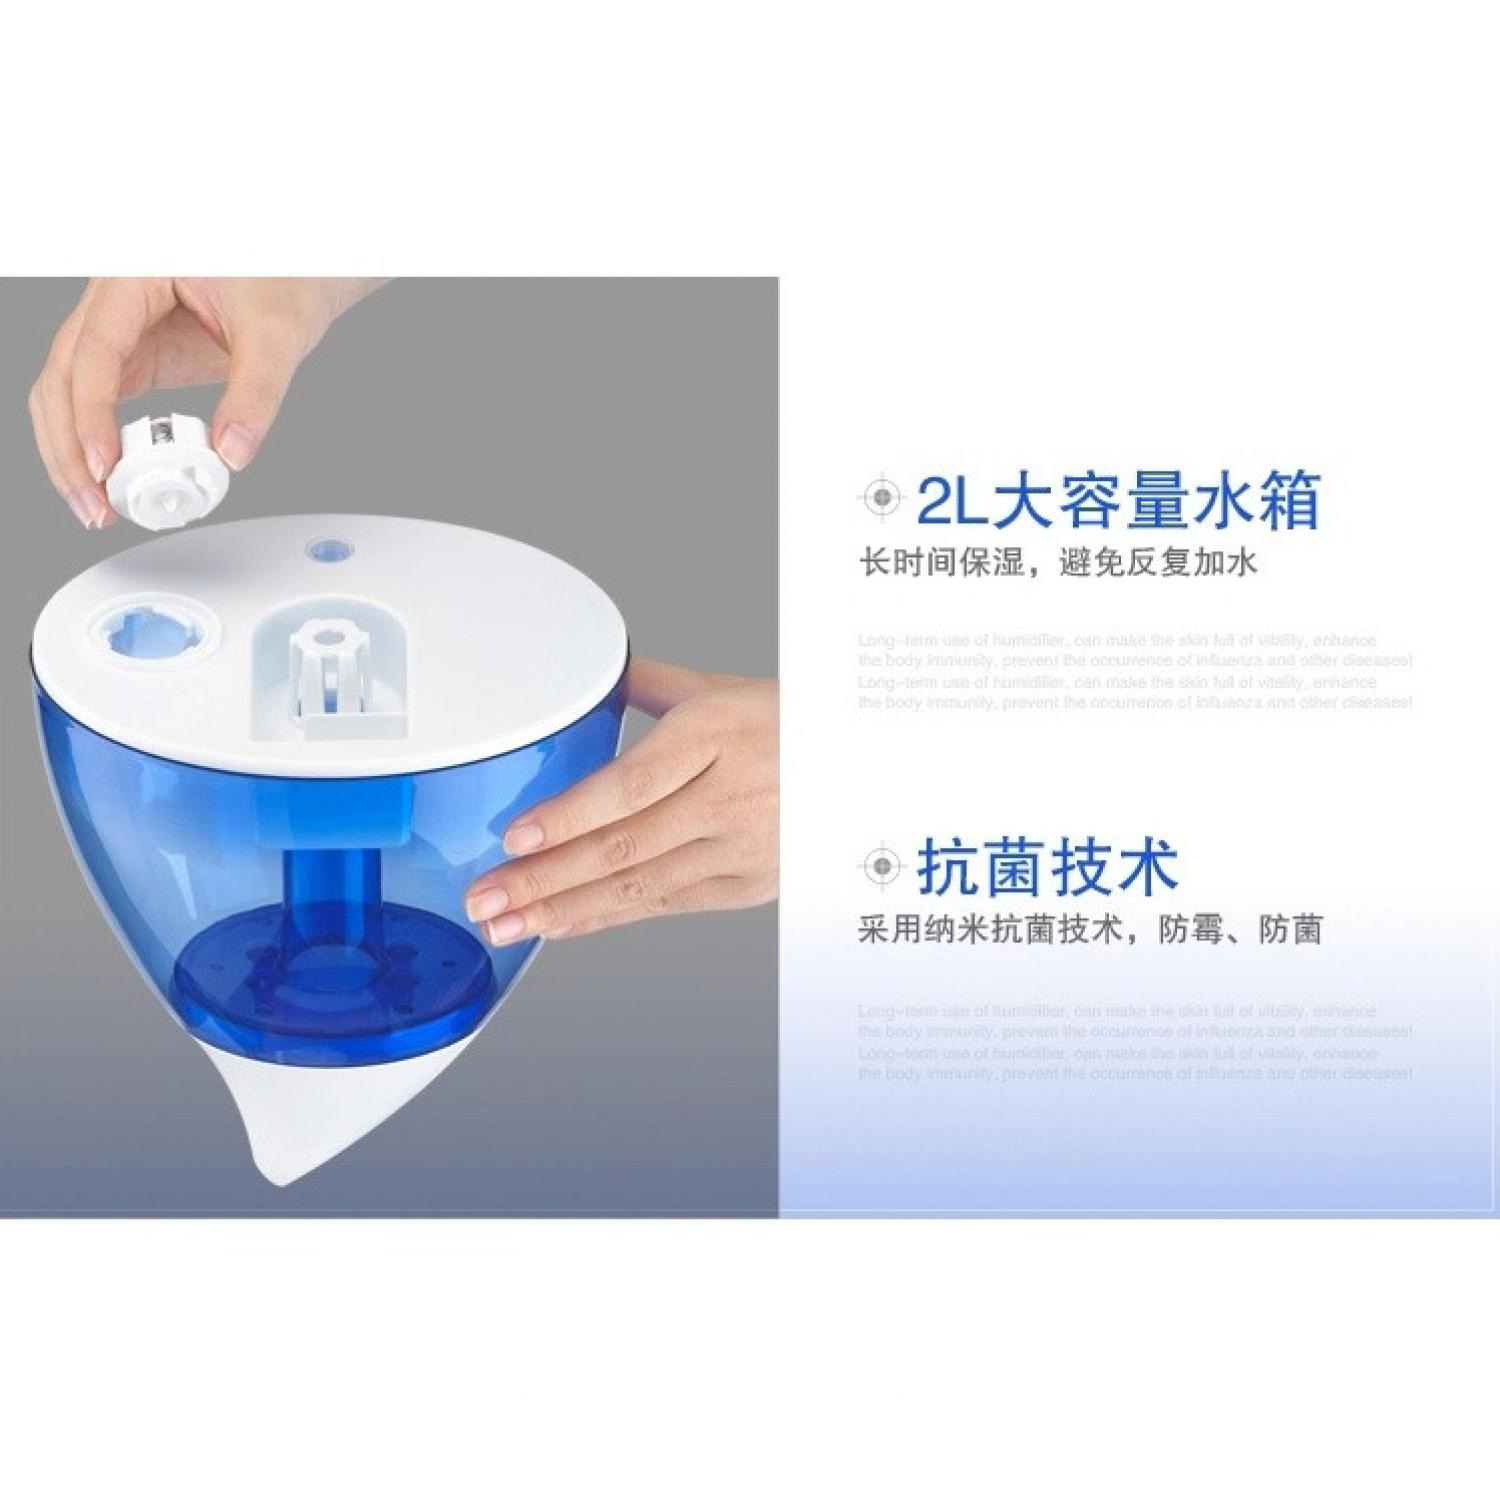 Classic Drop 6 in 1 Air Humidifier Aroma Therapy